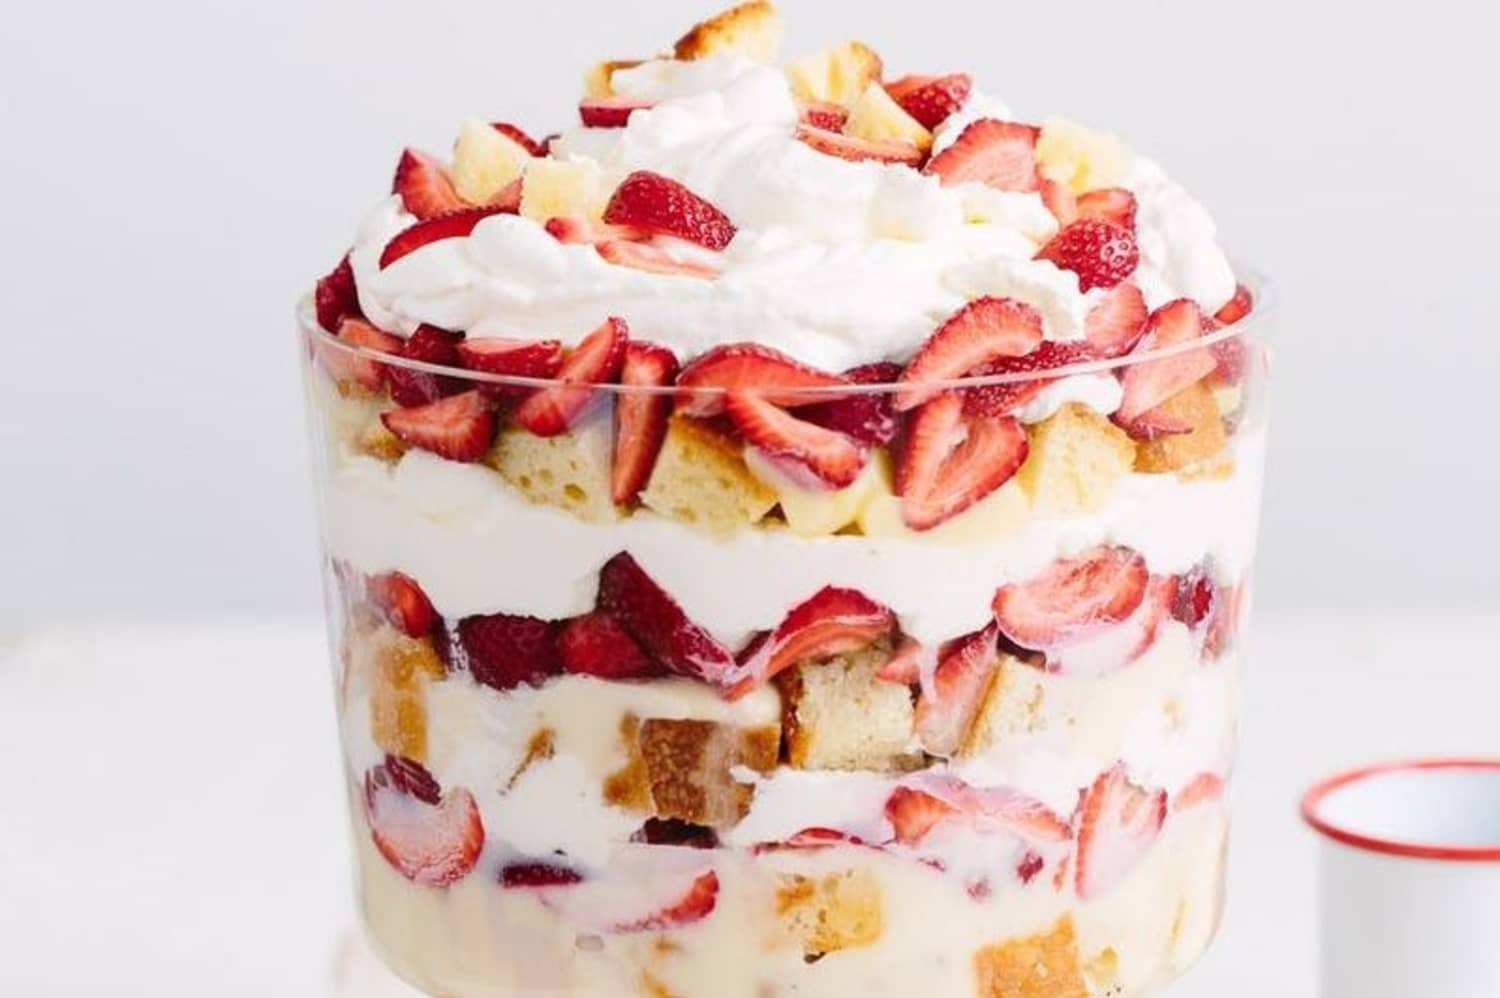 20 Sweet Recipes to Get Your Fill of Strawberries